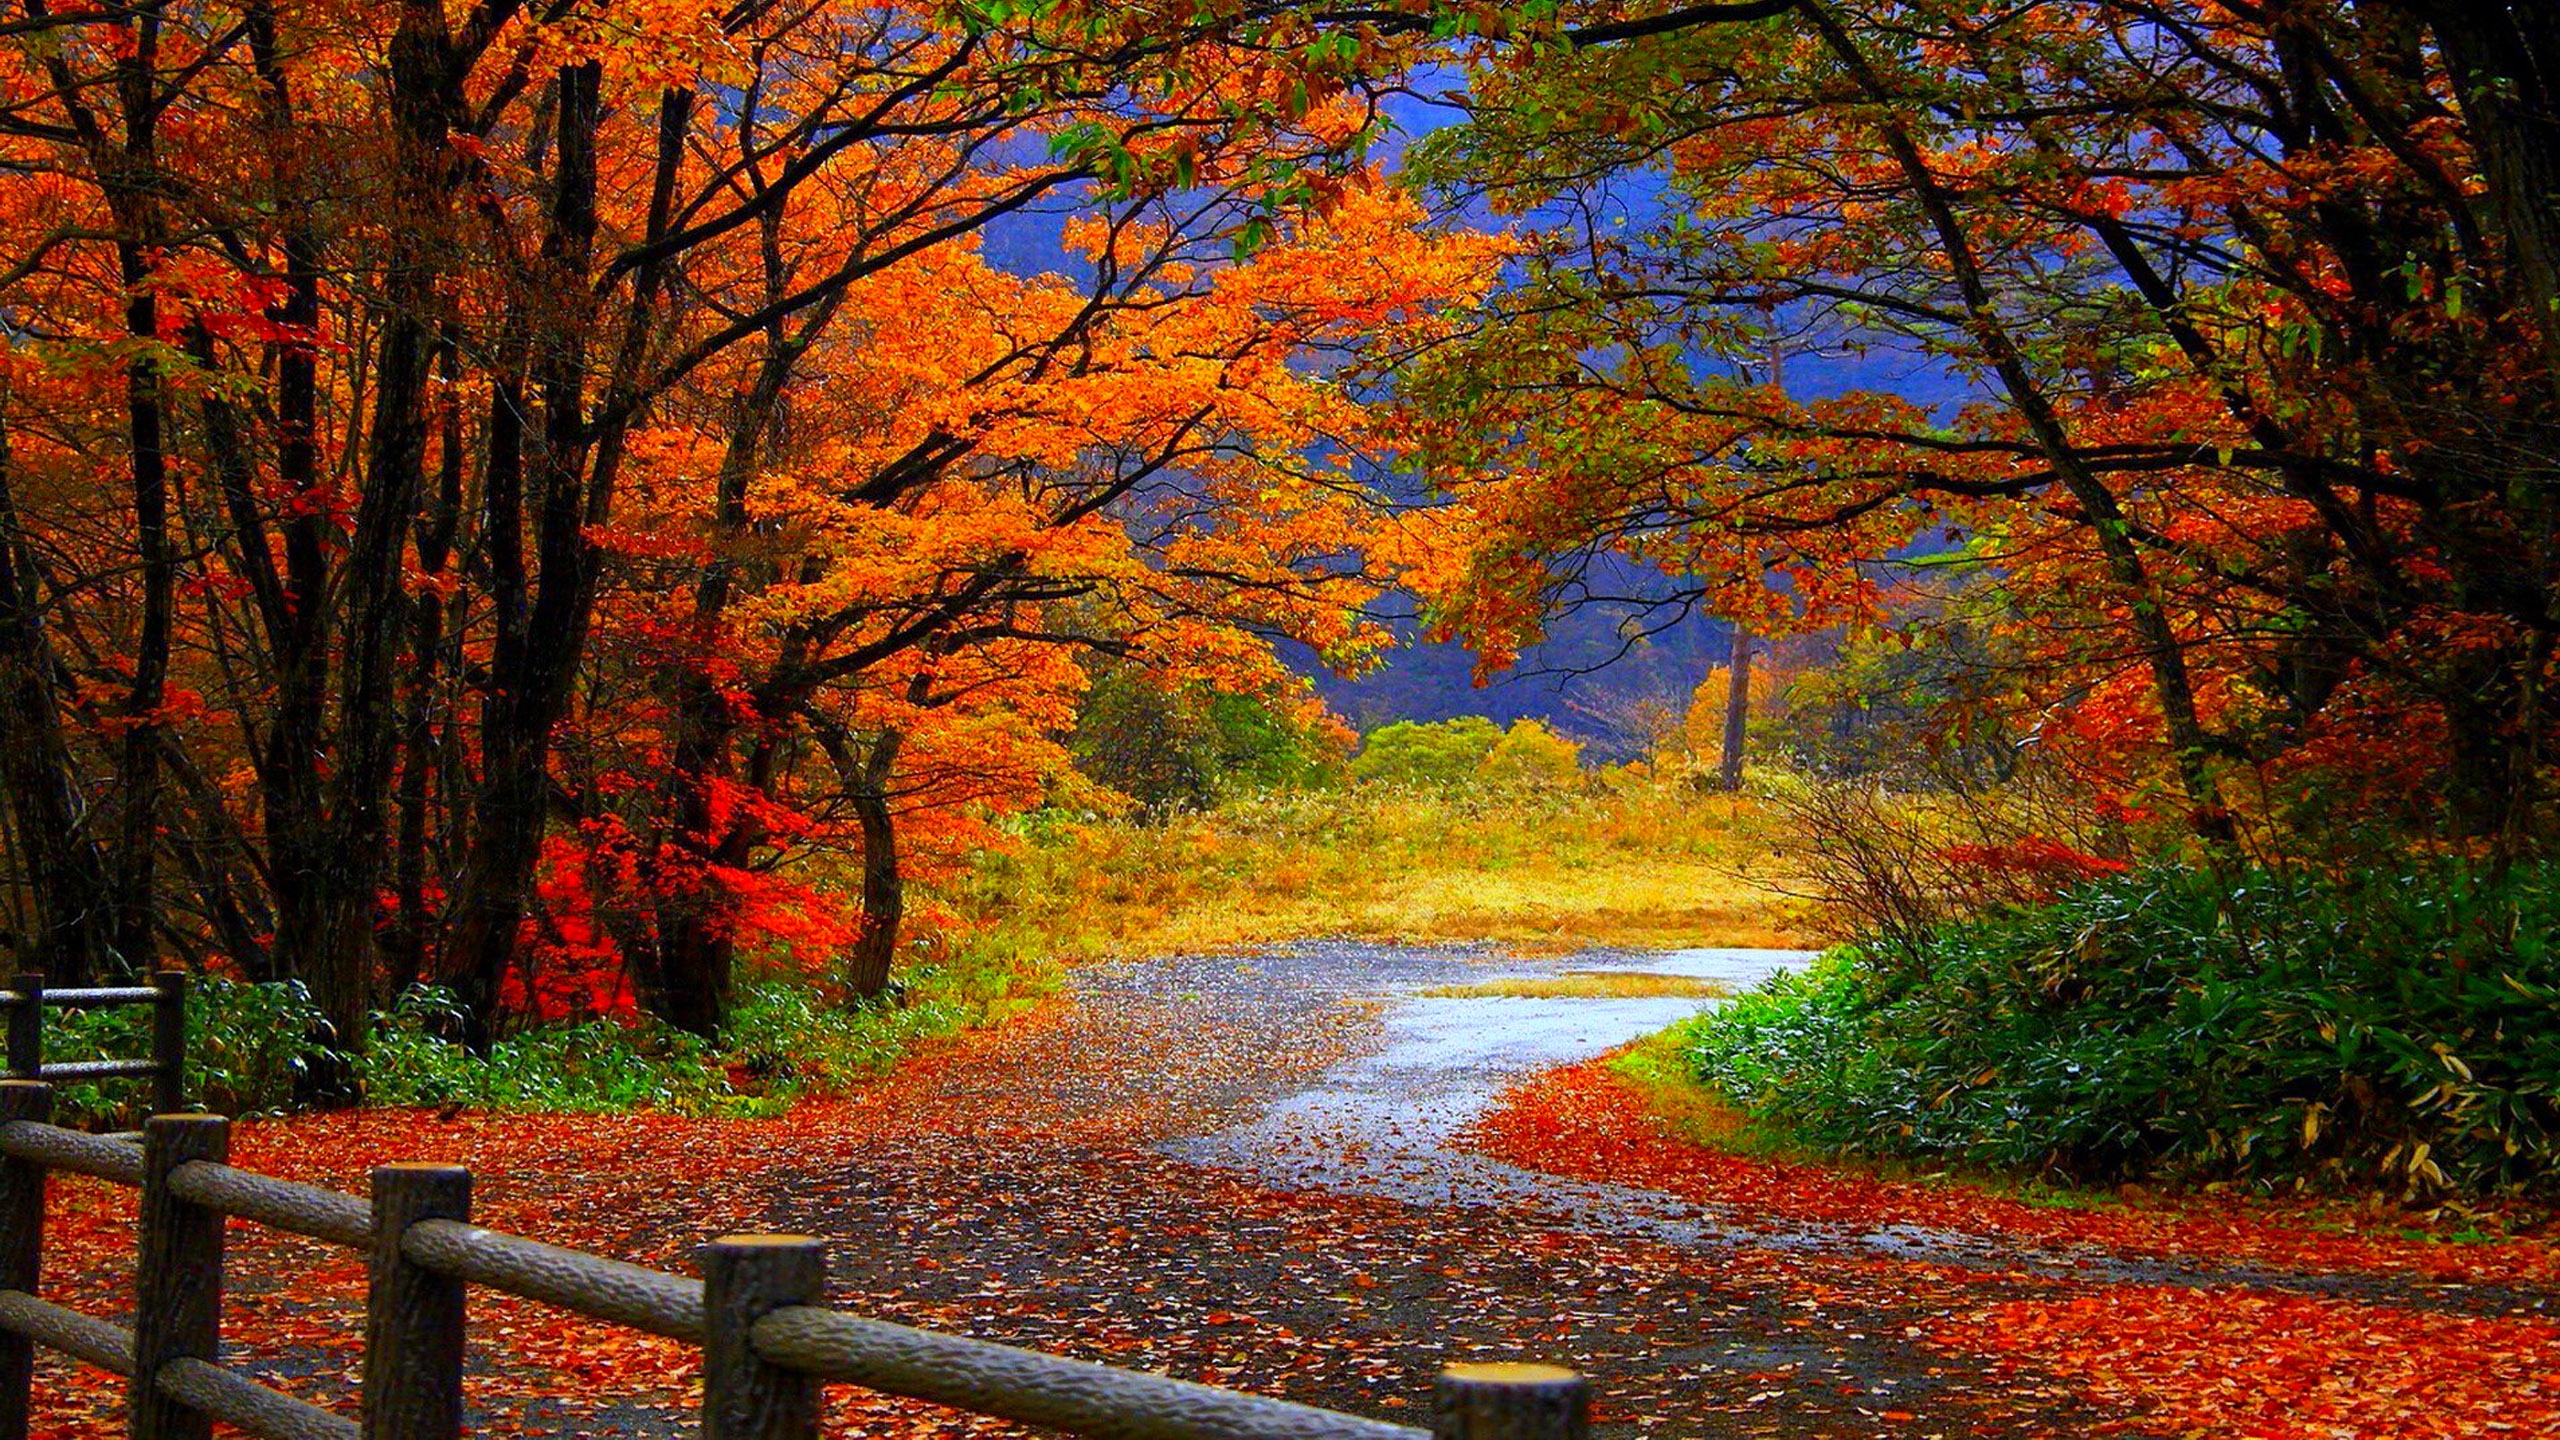 Autumn Trees Wallpaper Widescreen Images amp Pictures   Becuo 2560x1440